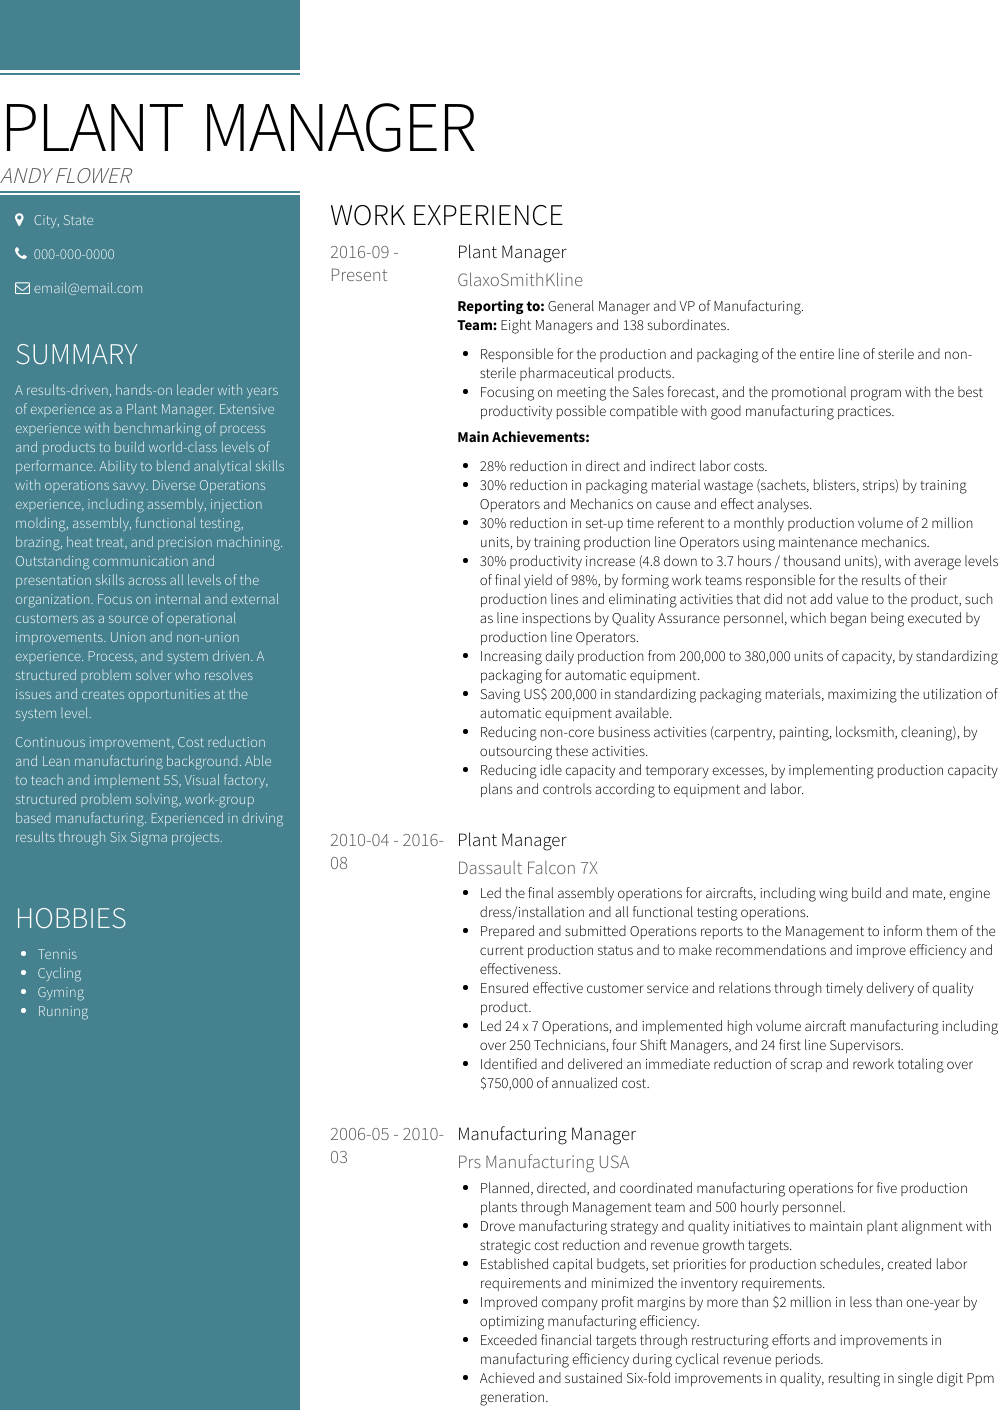 Plant Manager resume sample - free use in VisualCV